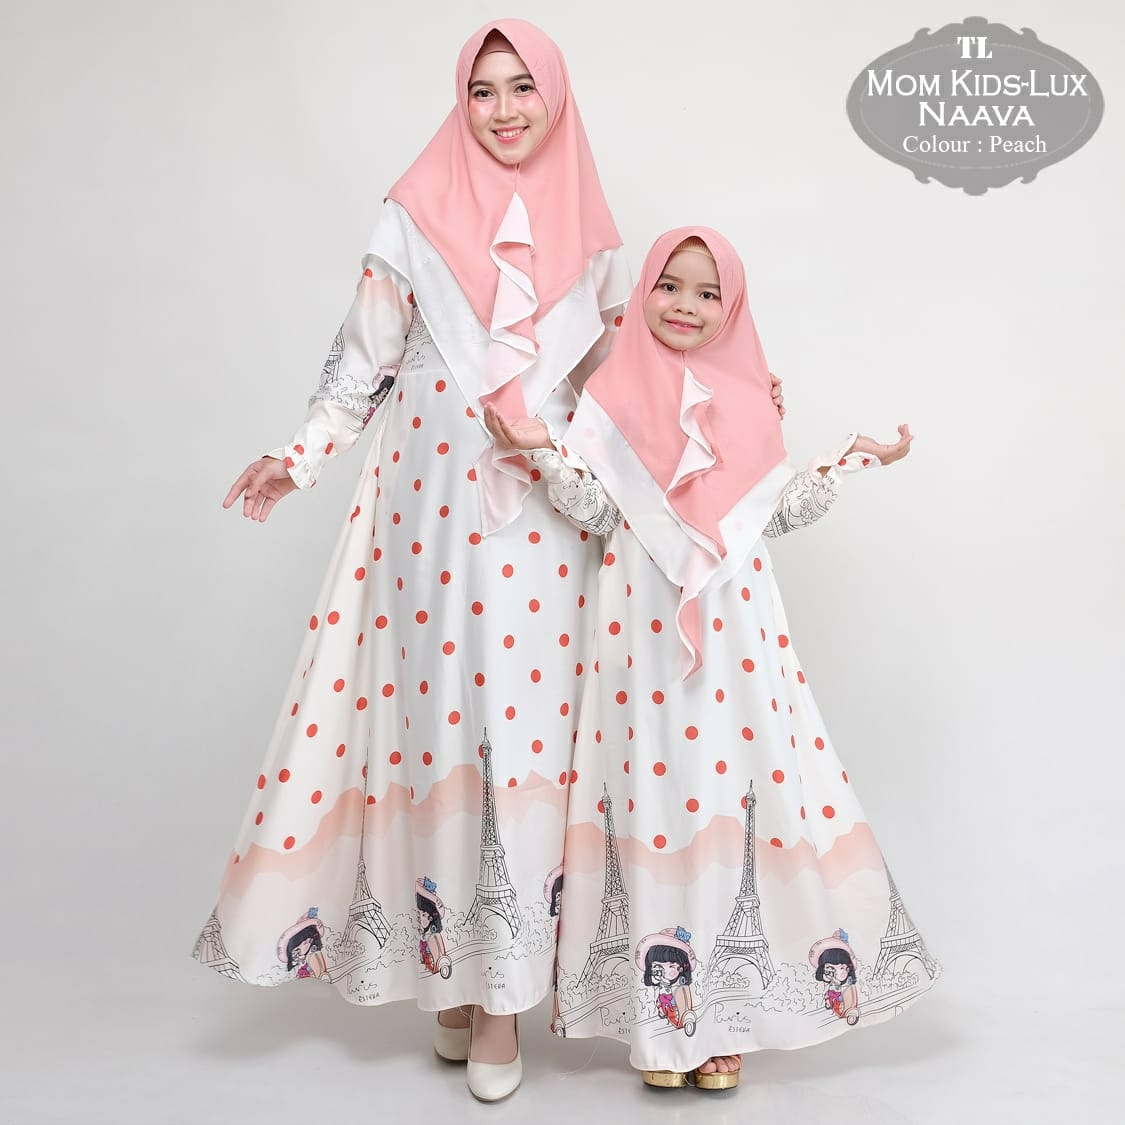 jaul gamis CP MK MAX-Lux naava bf026fc7d9